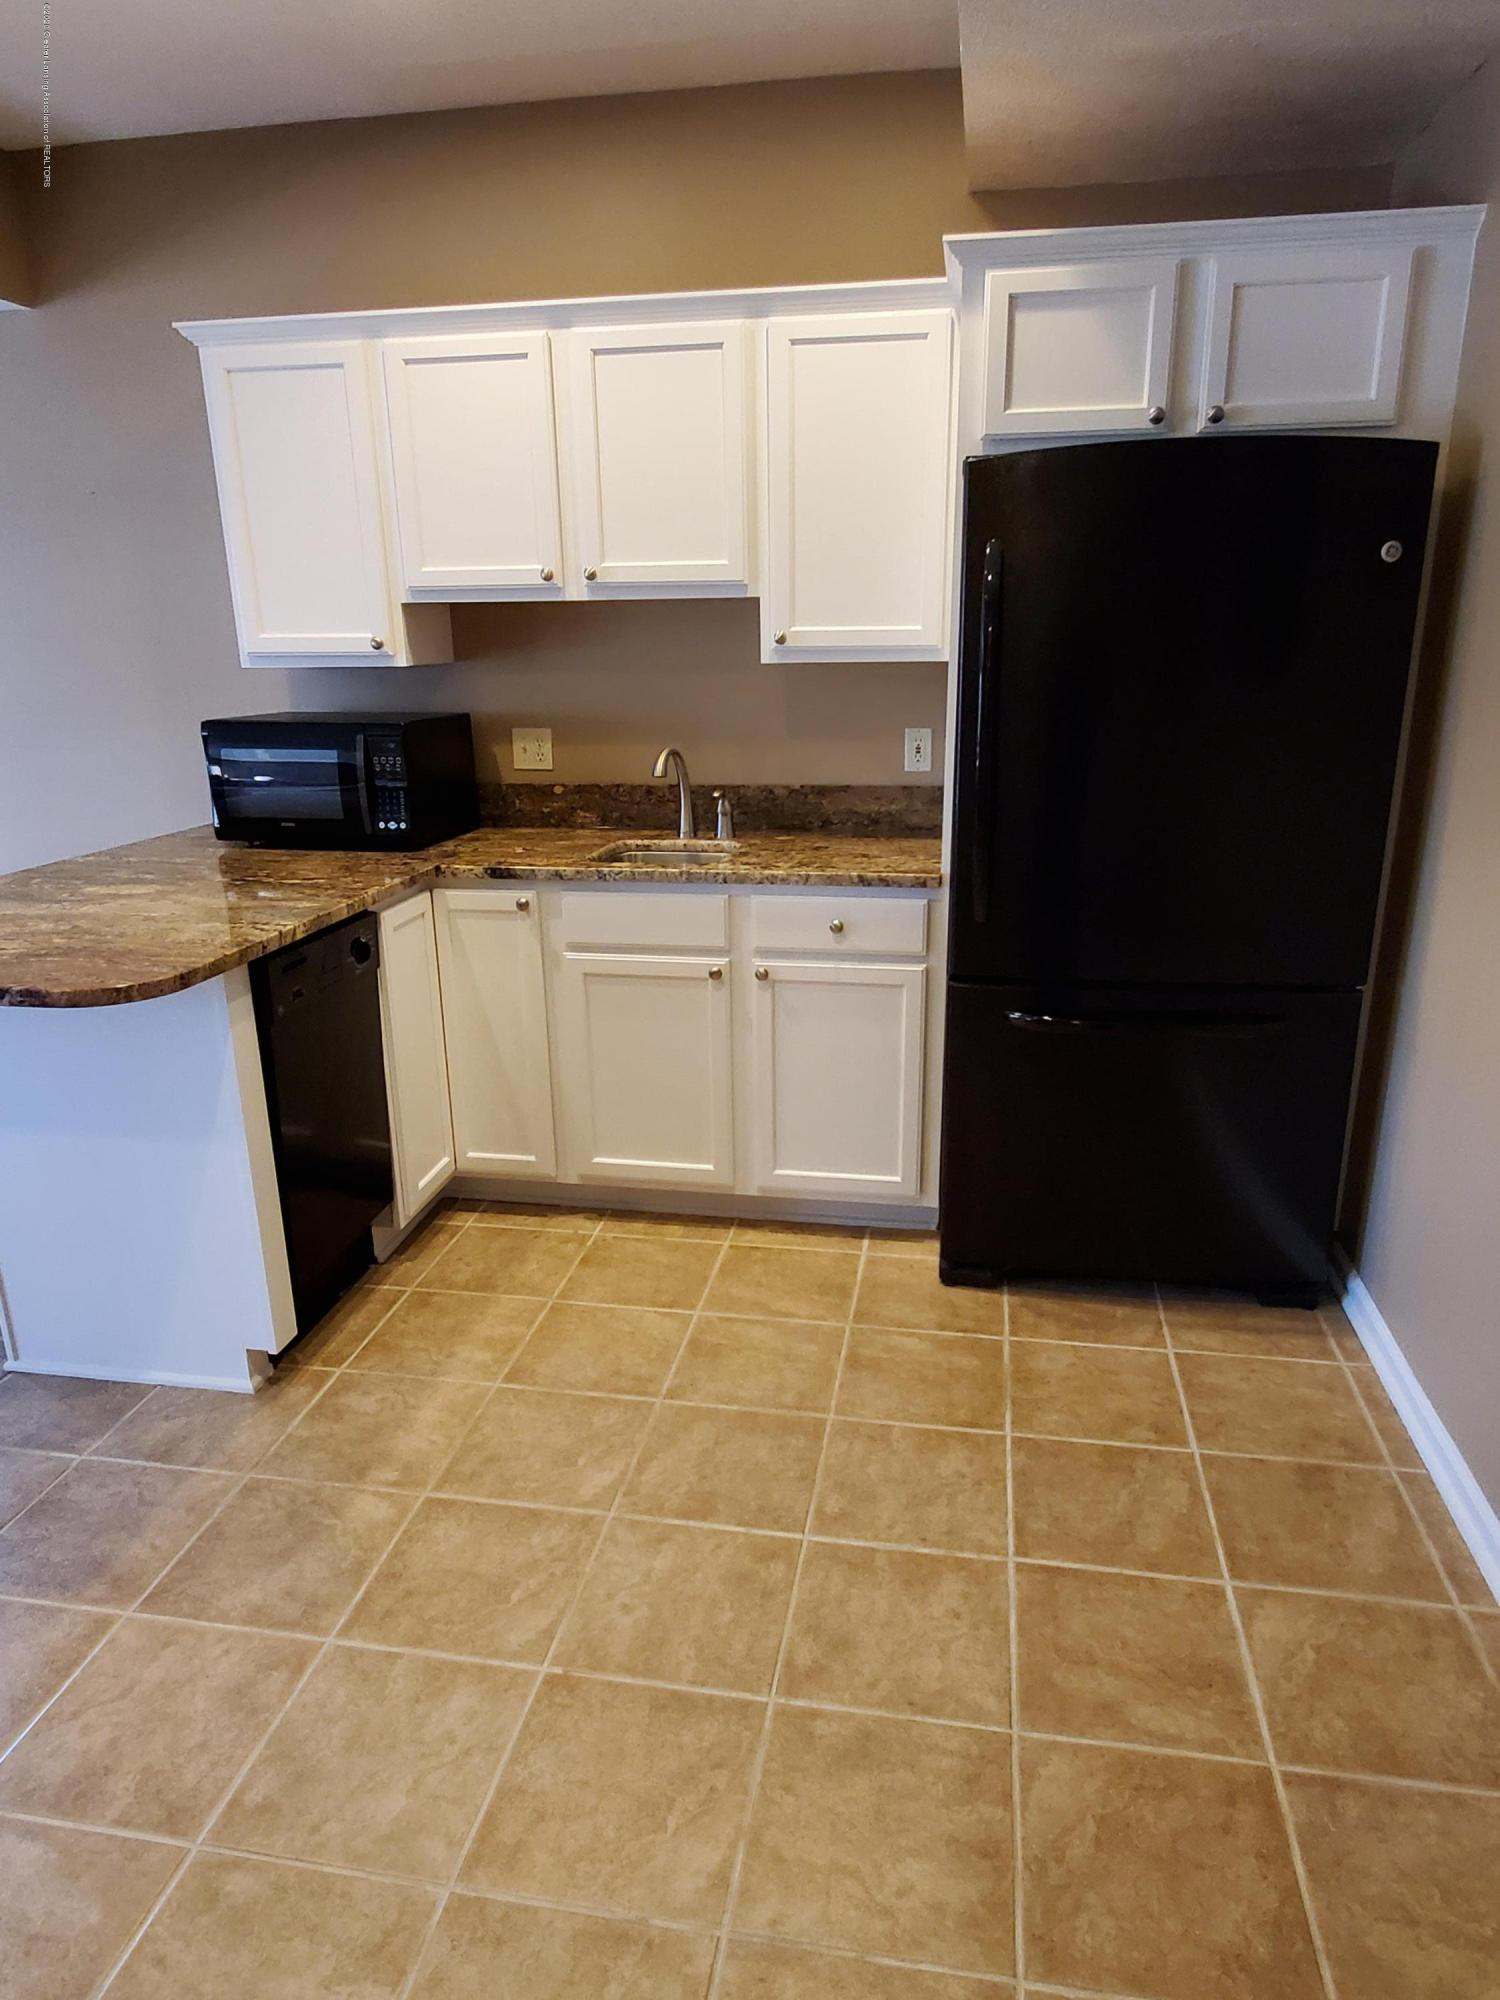 558 N Wheaton Rd - Kitchenette - 51